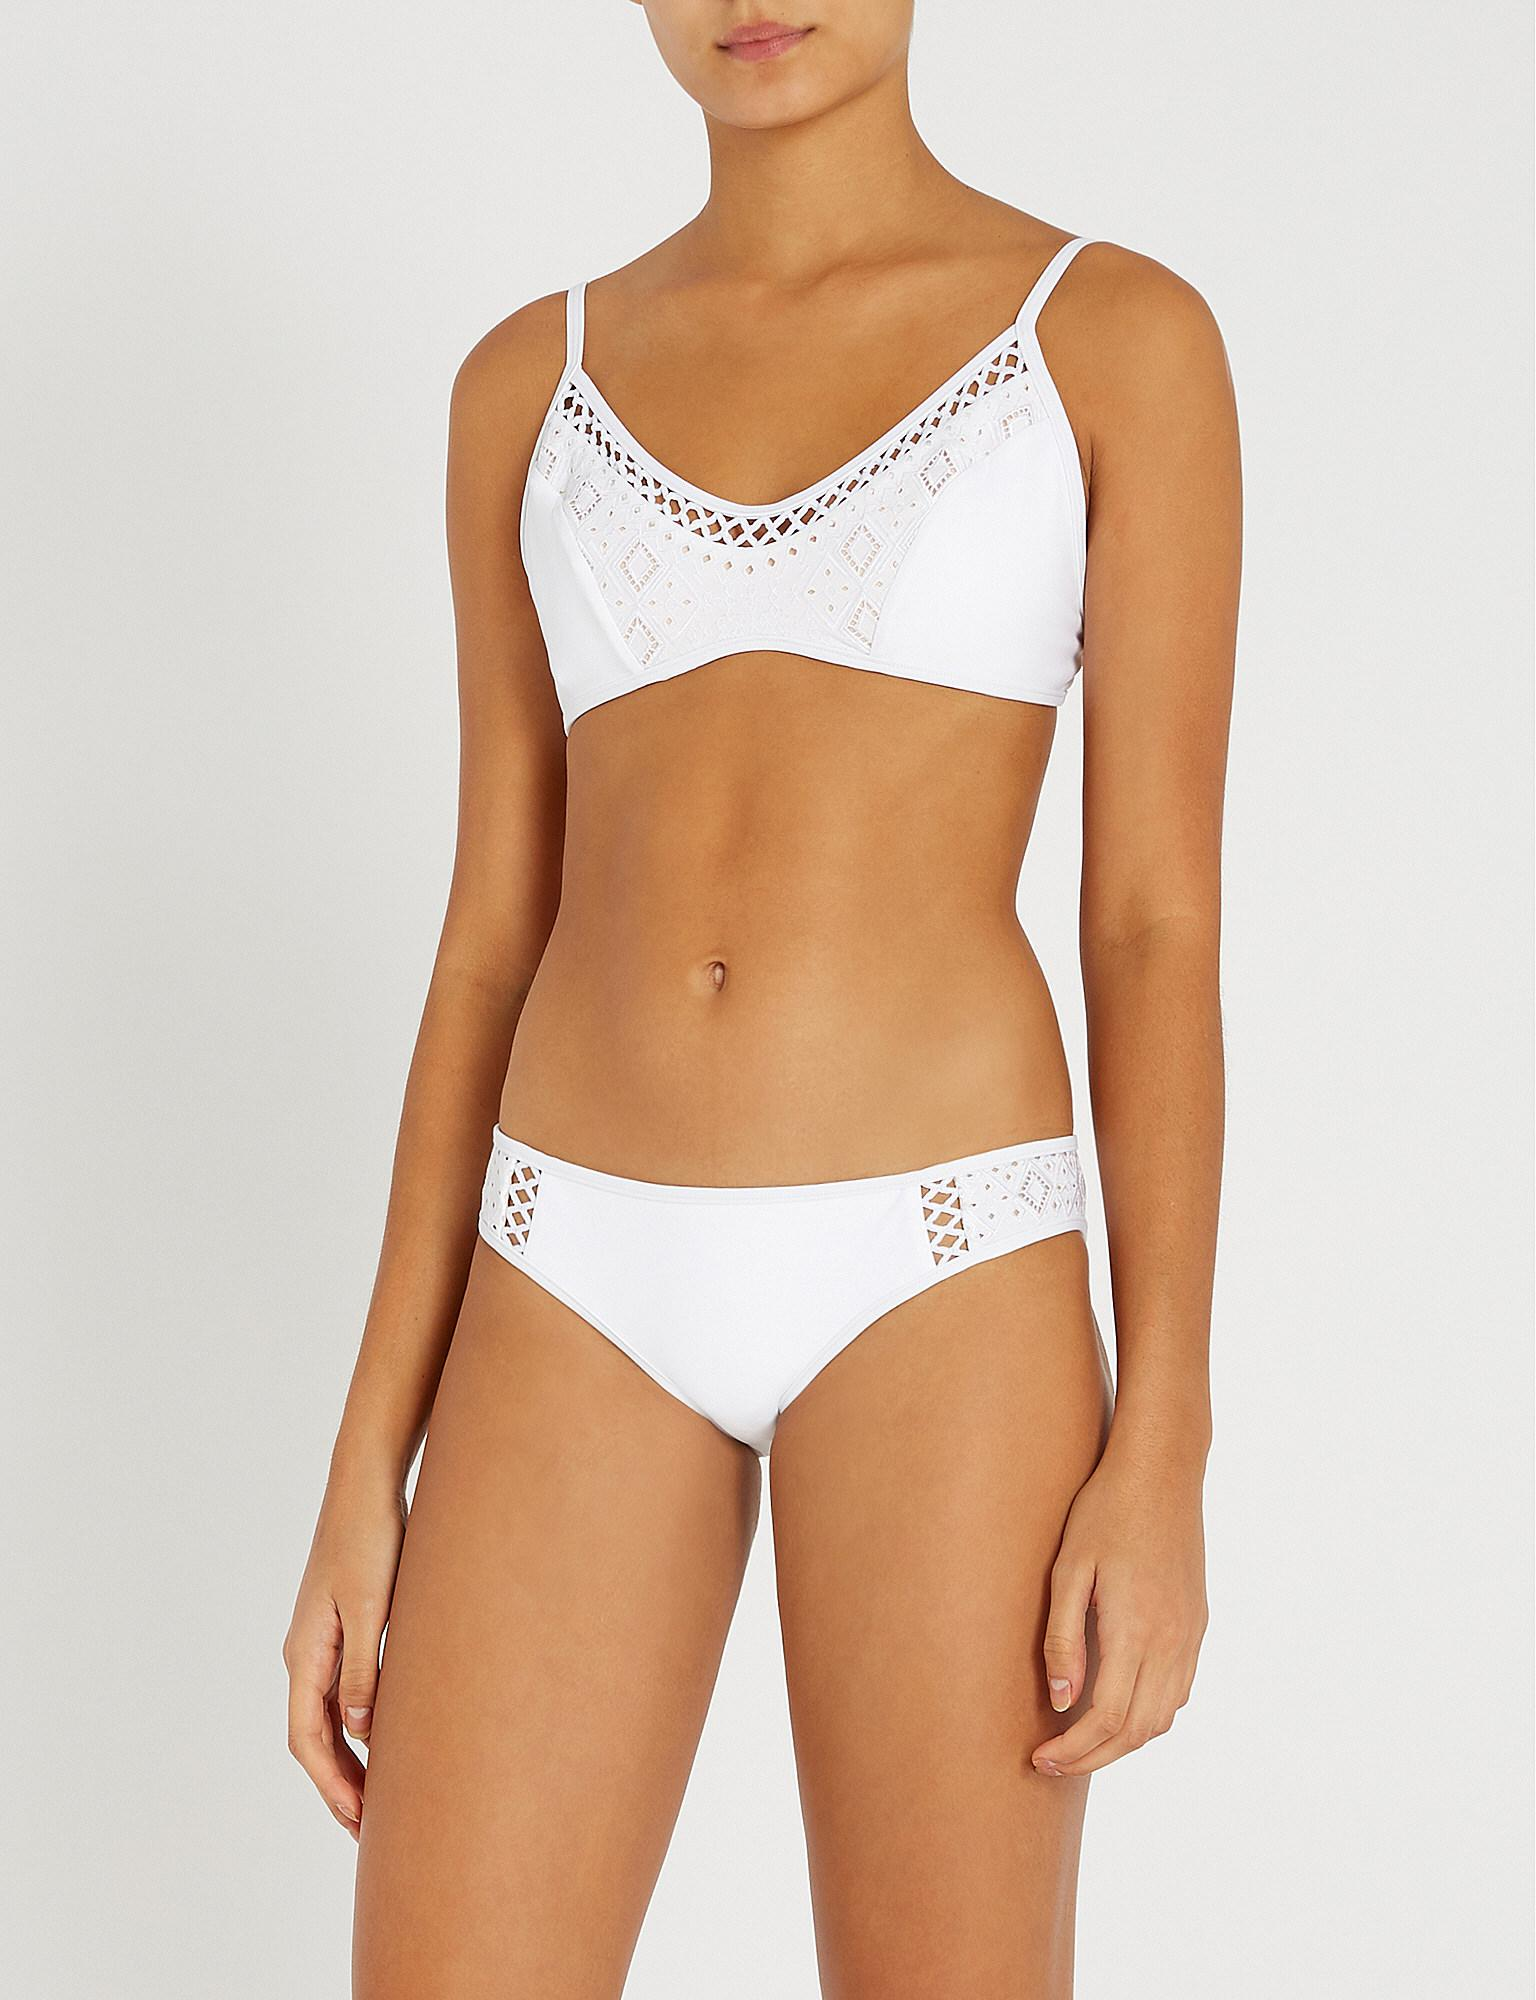 747ad33bf2 Lyst - Jets by Jessika Allen Indulgence Bikini Top in White